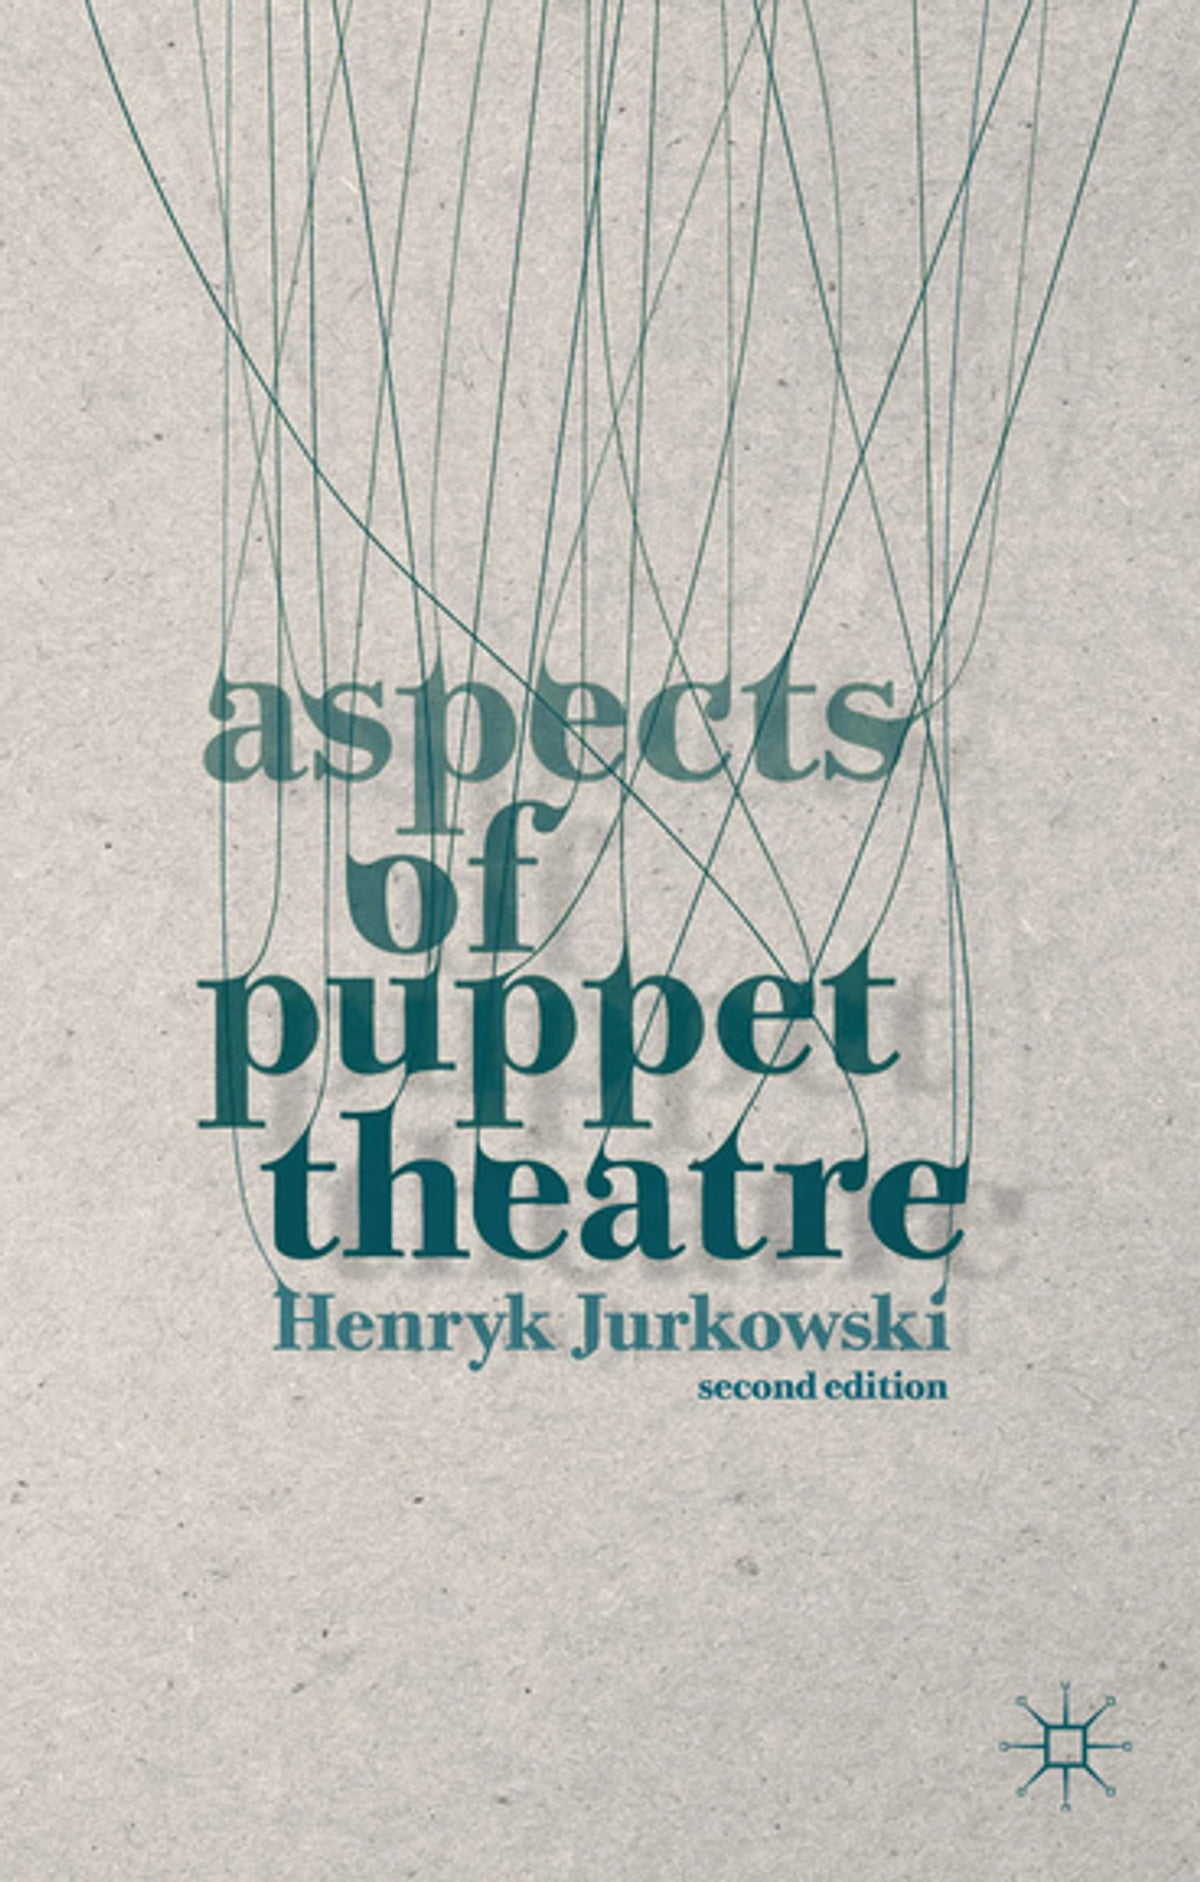 Aspects of Puppet Theatre eBook by Henryk Jurkowski - 9781137338464 |  Rakuten Kobo